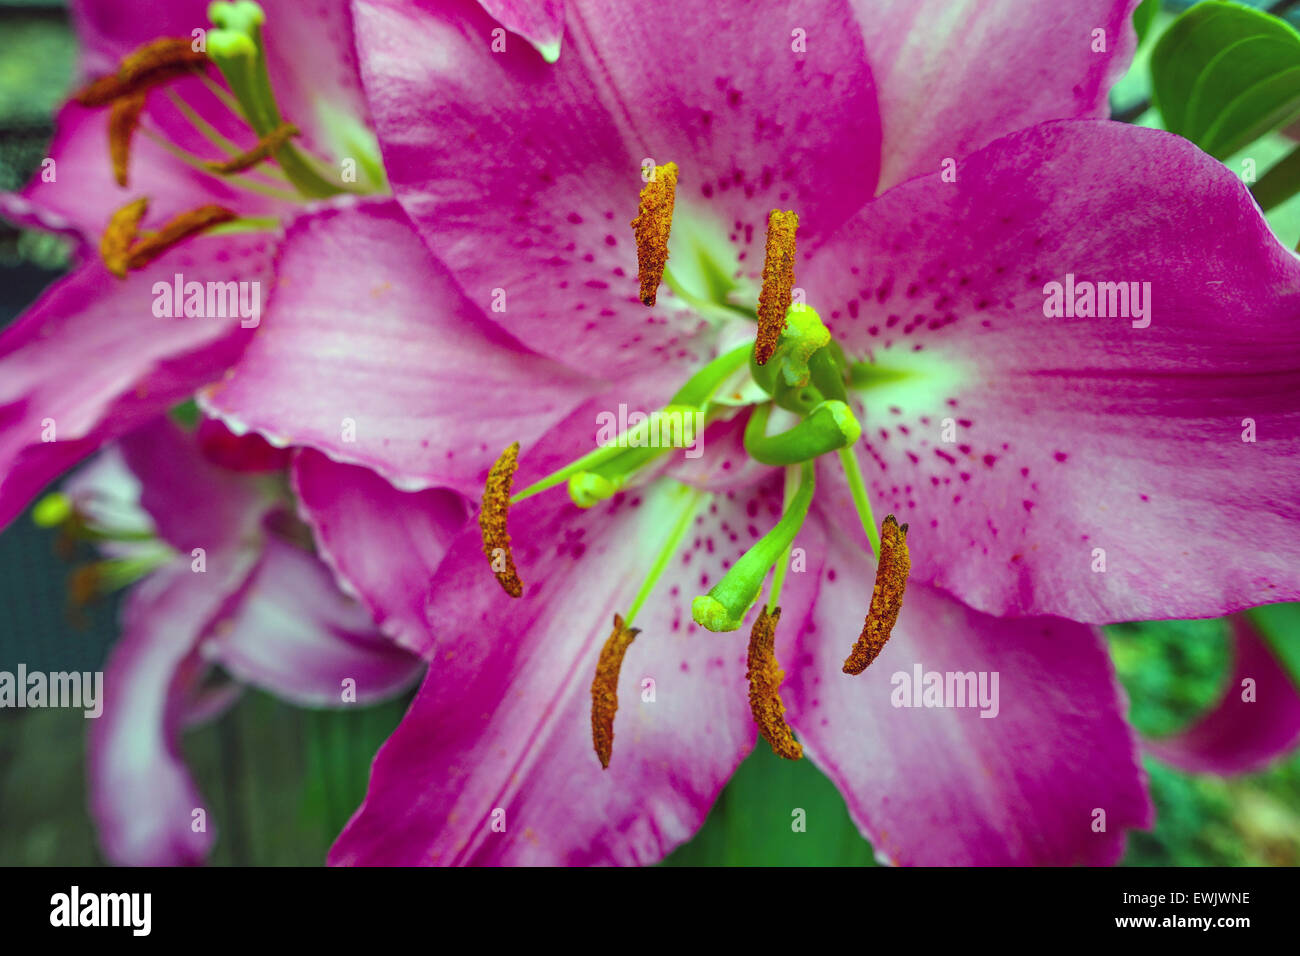 Close up of purple lily flowers with stamens and pollen stock photo close up of purple lily flowers with stamens and pollen izmirmasajfo